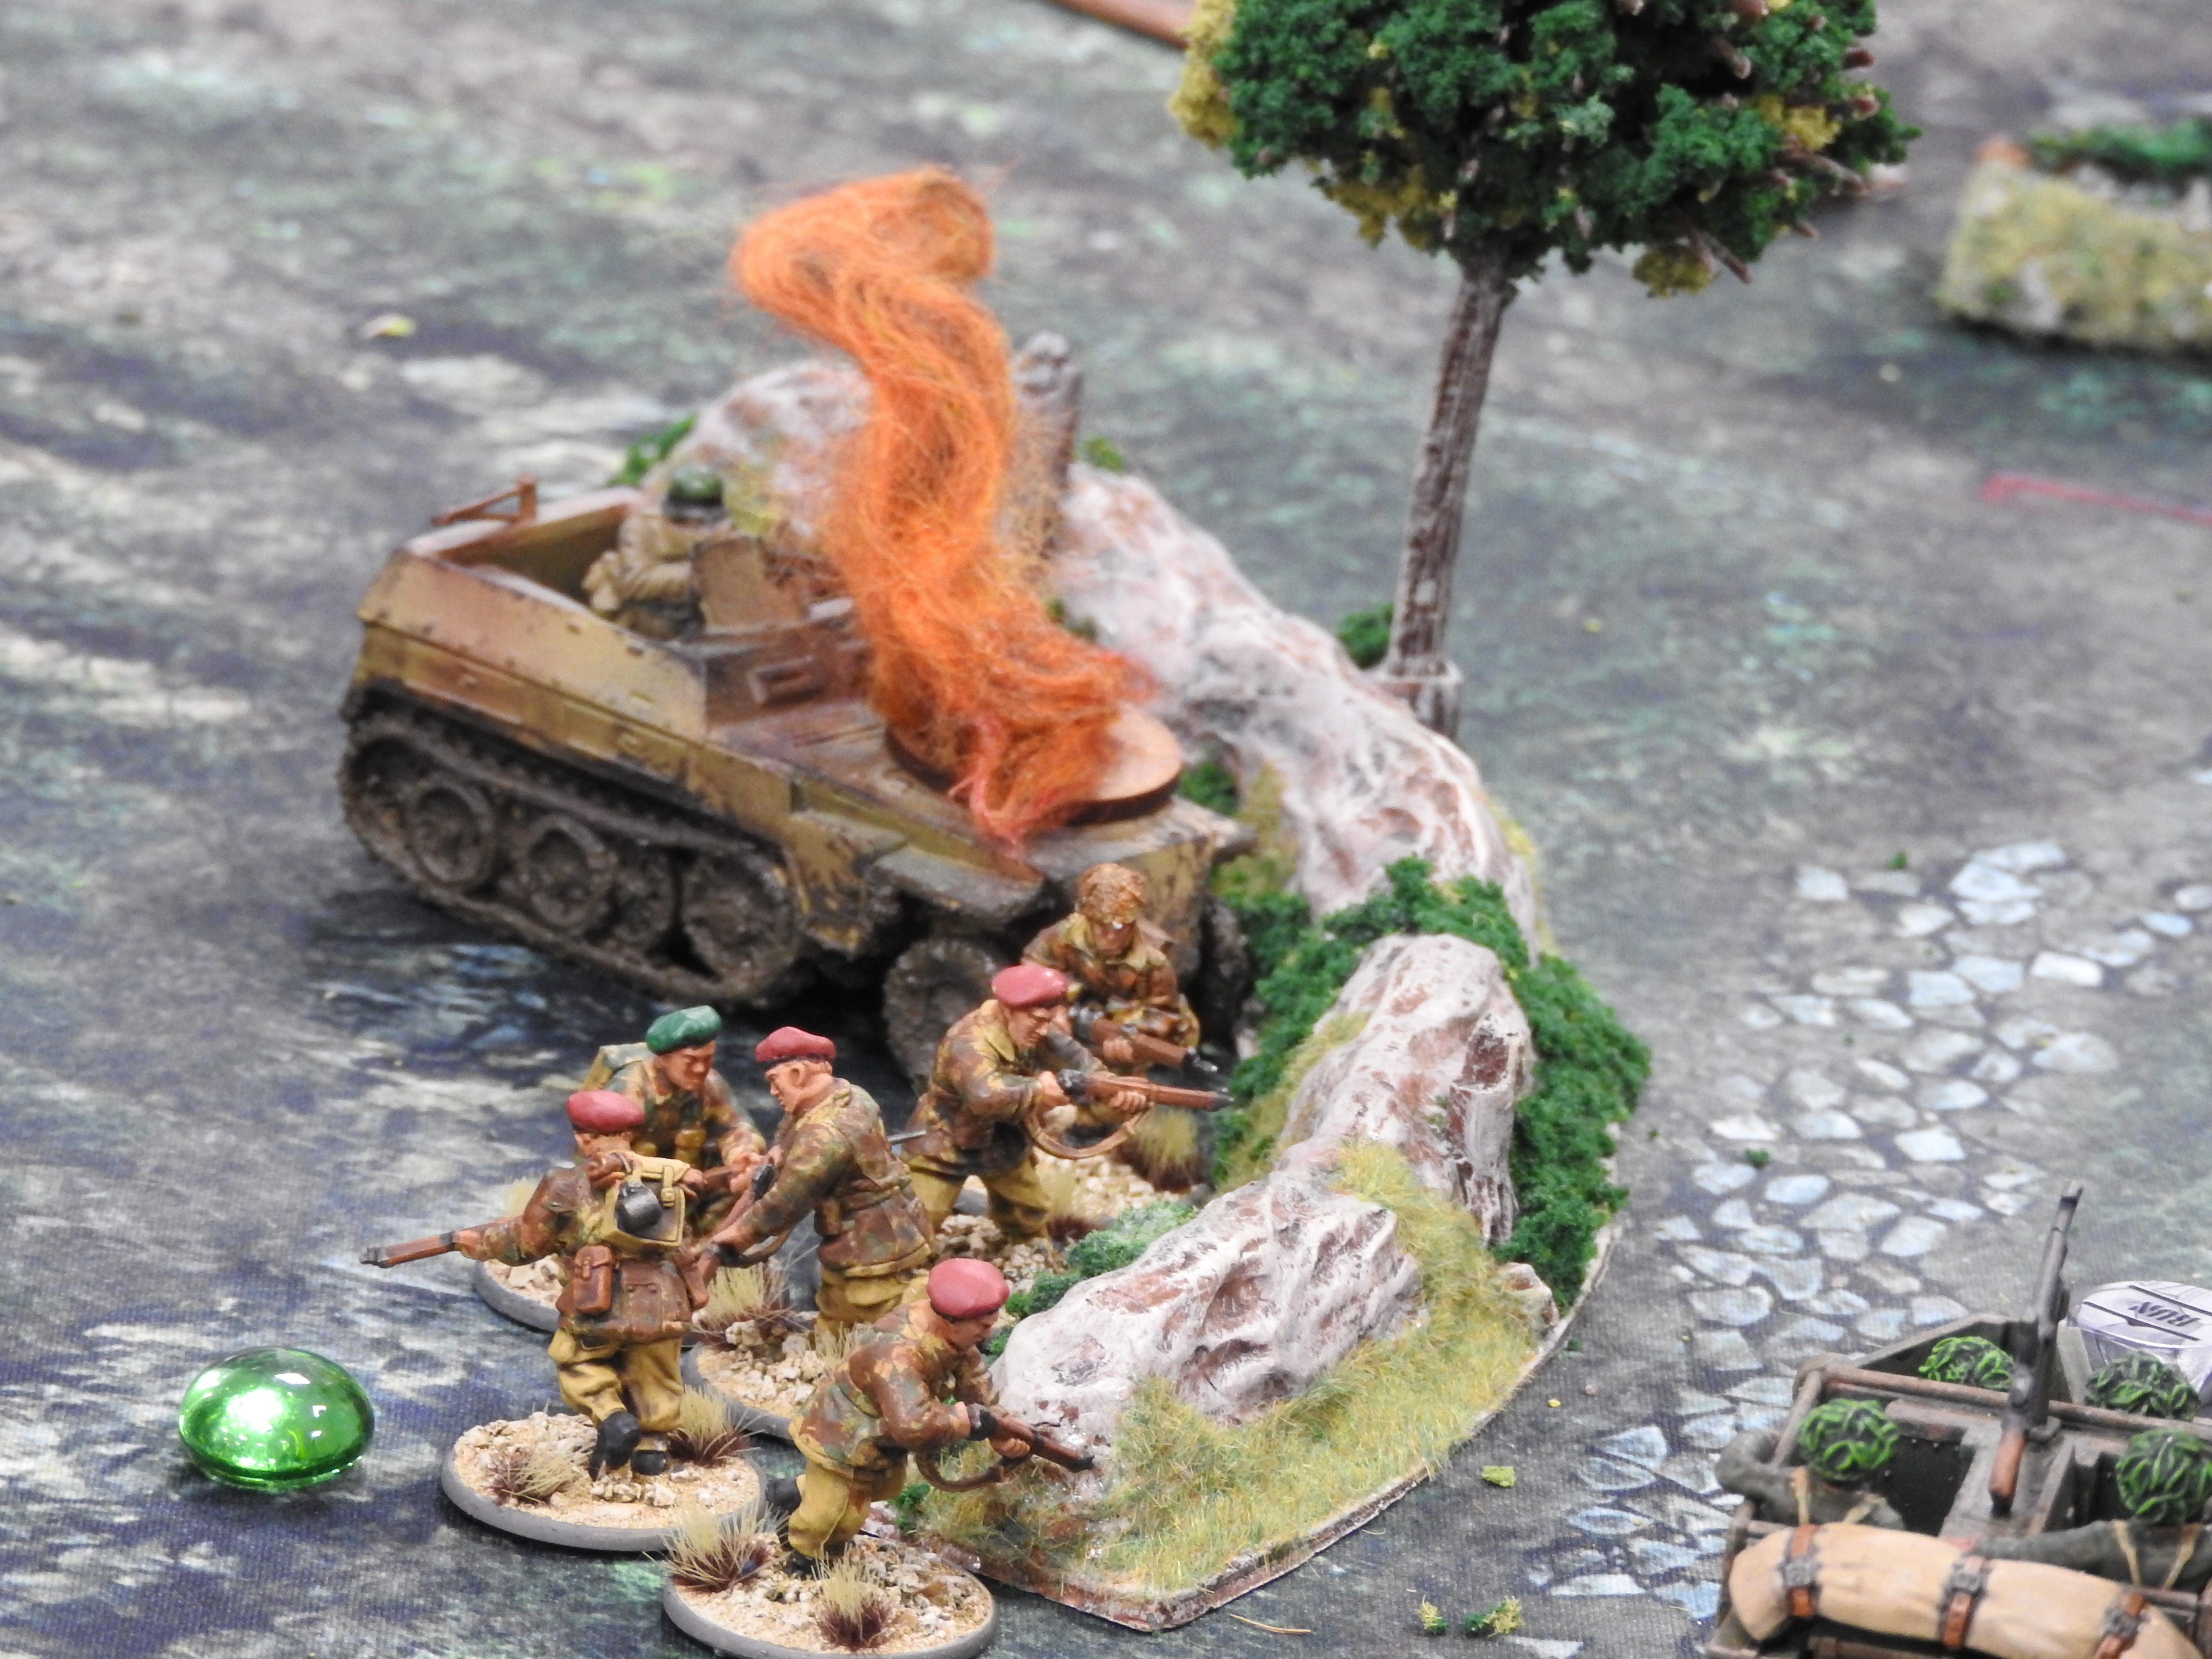 Red Devils versus 352nd Infantry Division in a fierce infantry engagement